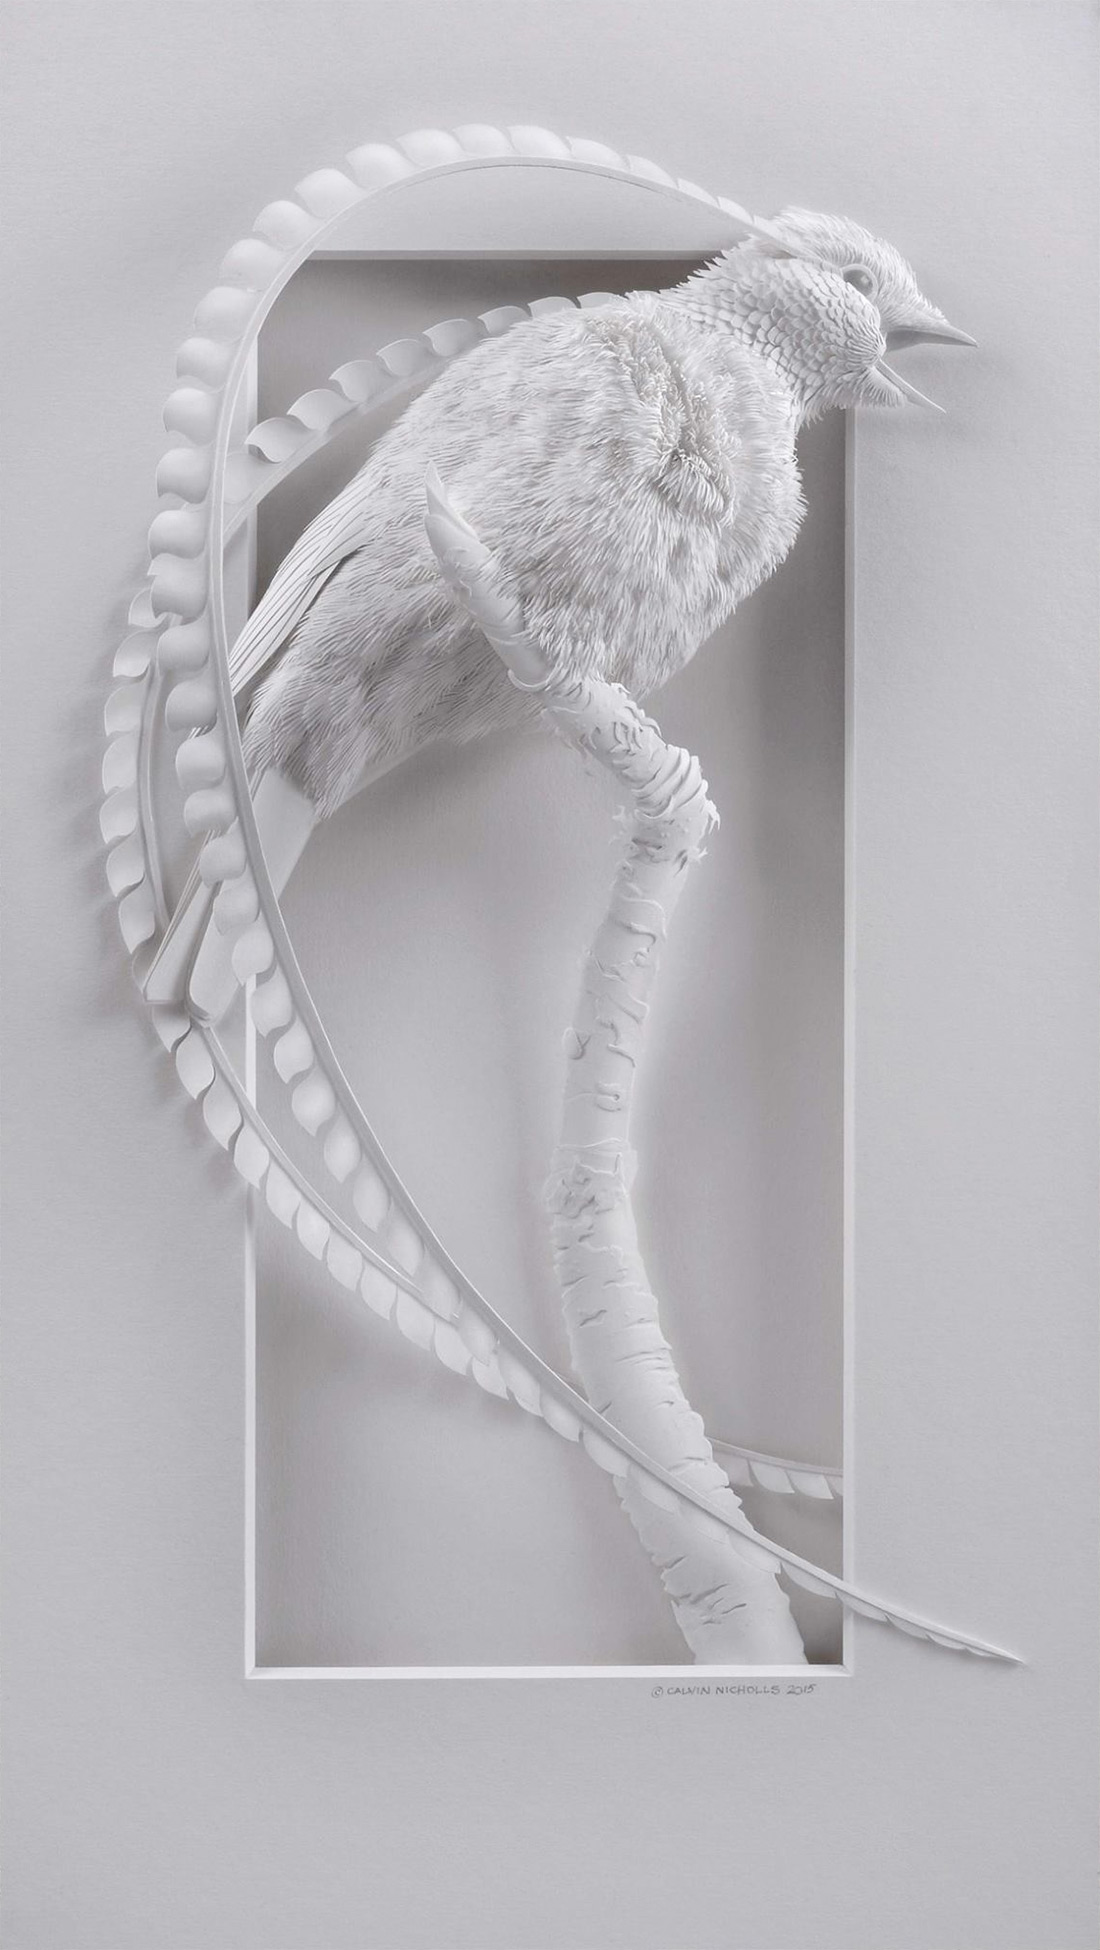 Super Realistic Paper Sculptures Of Animals By Calvin Nicholls 2